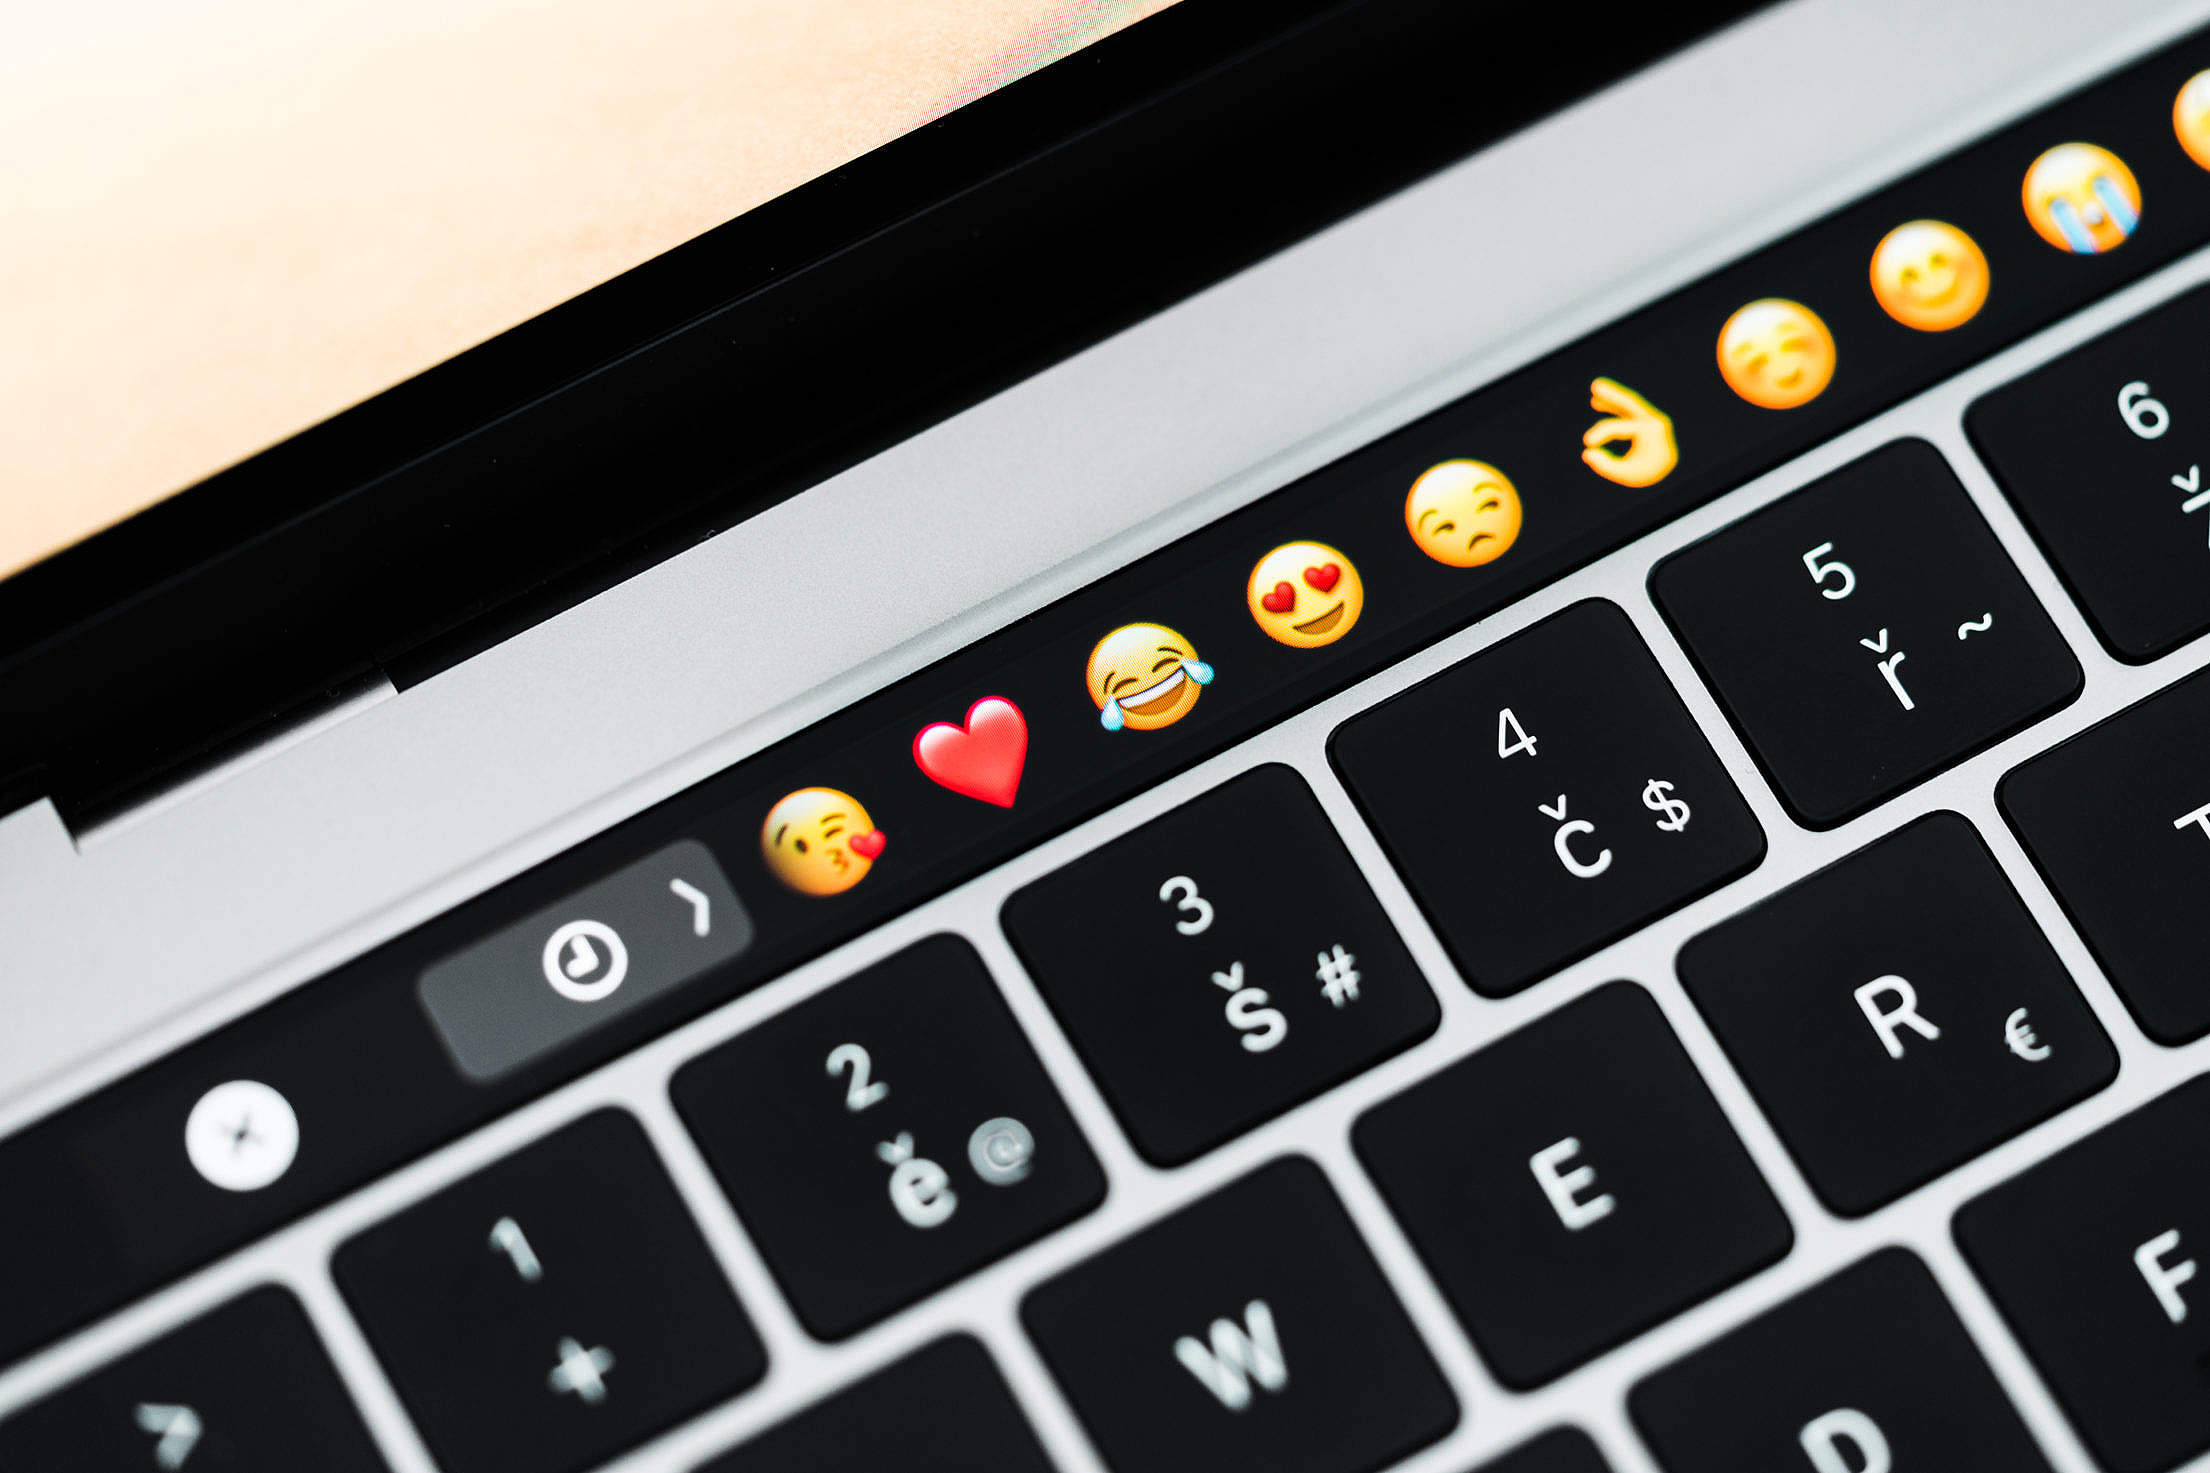 MacBook Pro Touchbar Free Stock Photo